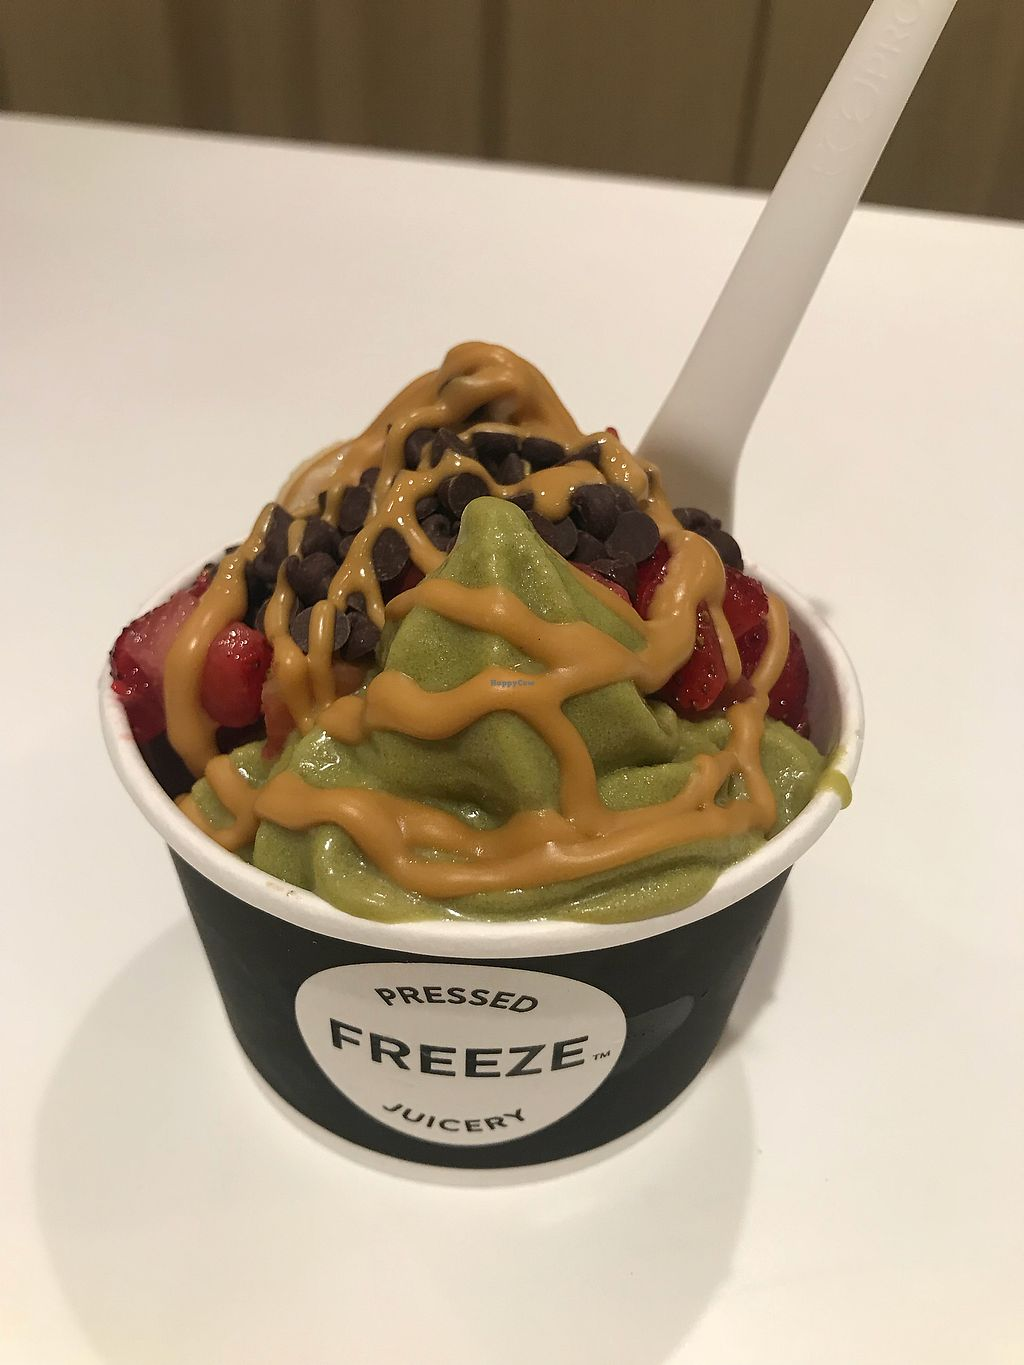 """Photo of Pressed Juicery  by <a href=""""/members/profile/GinaYablow"""">GinaYablow</a> <br/>Vegan freeze <br/> October 9, 2017  - <a href='/contact/abuse/image/64995/313711'>Report</a>"""